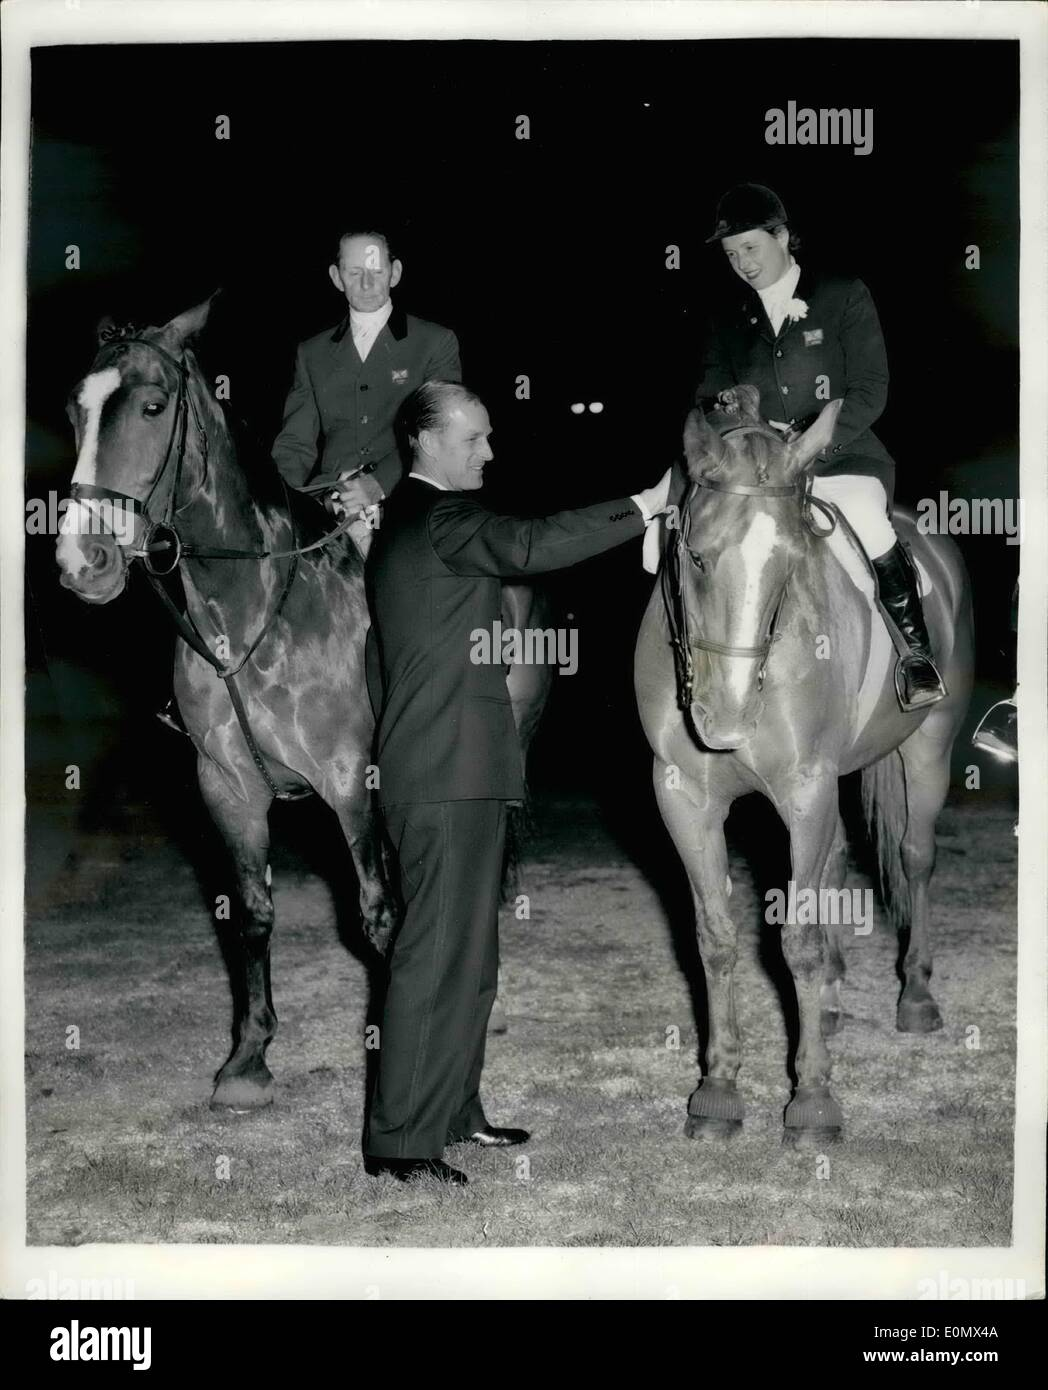 Jul. 24, 1956 - 24-7-56 Duke of Edinburgh presents a whip to Pat Smythe. H.R.H. The Duke of Edinburgh last evening visited the International Horse Show at White City where he presented a presentation whip to each member of the British Show Jumping Team, Wilf White; Pat Smythe and Peter Robeson, who won the bronze medal at the recent Stockholm Equestrian Olympics. Keystone Photo Shows: The Duke of Edinburgh presents the whip to Pat Smythe at the White City while Wilf White looks on last evening. - Stock Image